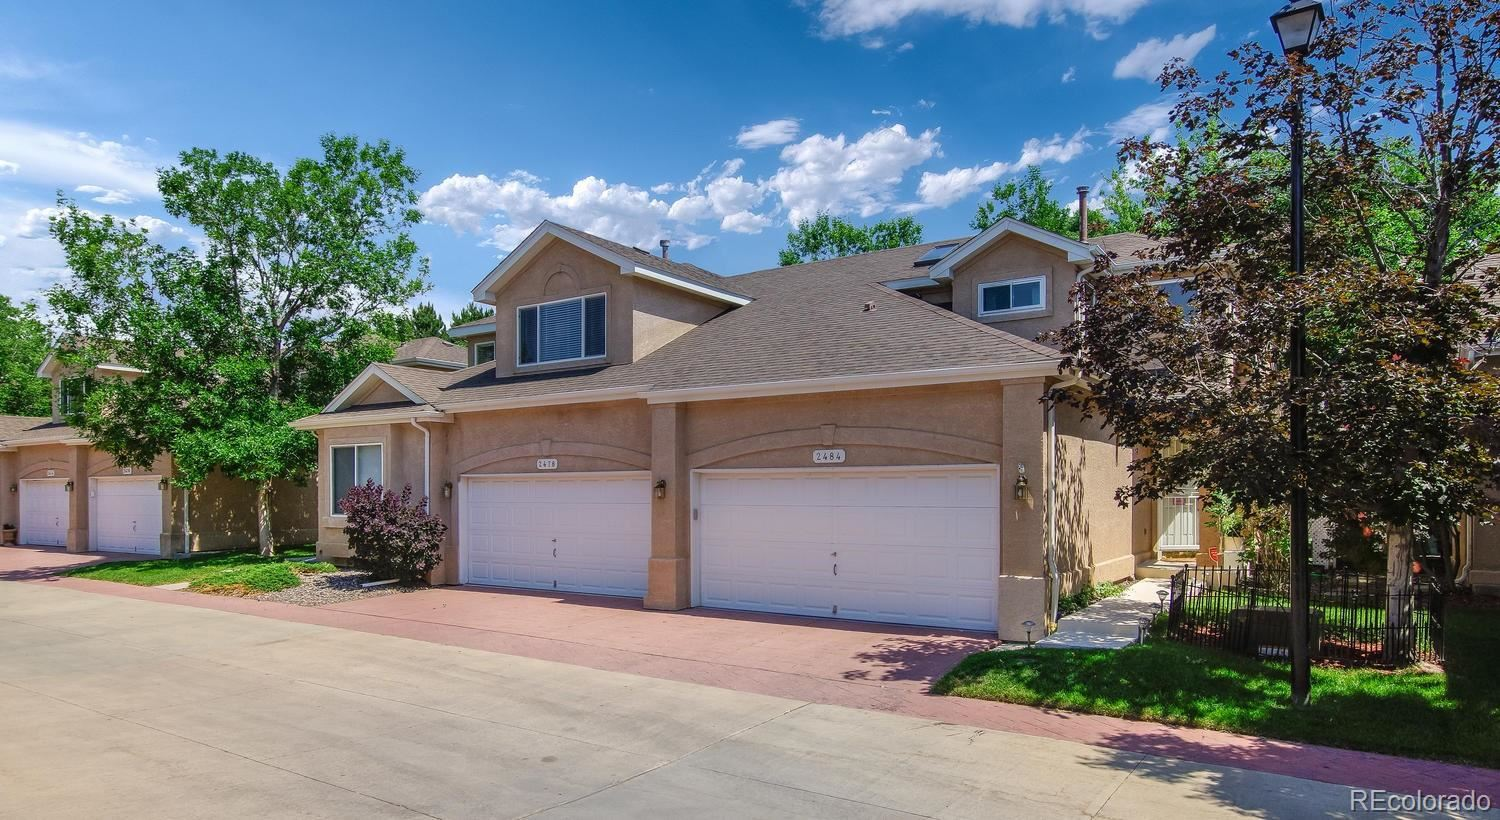 2484 S Scranton Way, Aurora, CO 80014 - #: 5959043